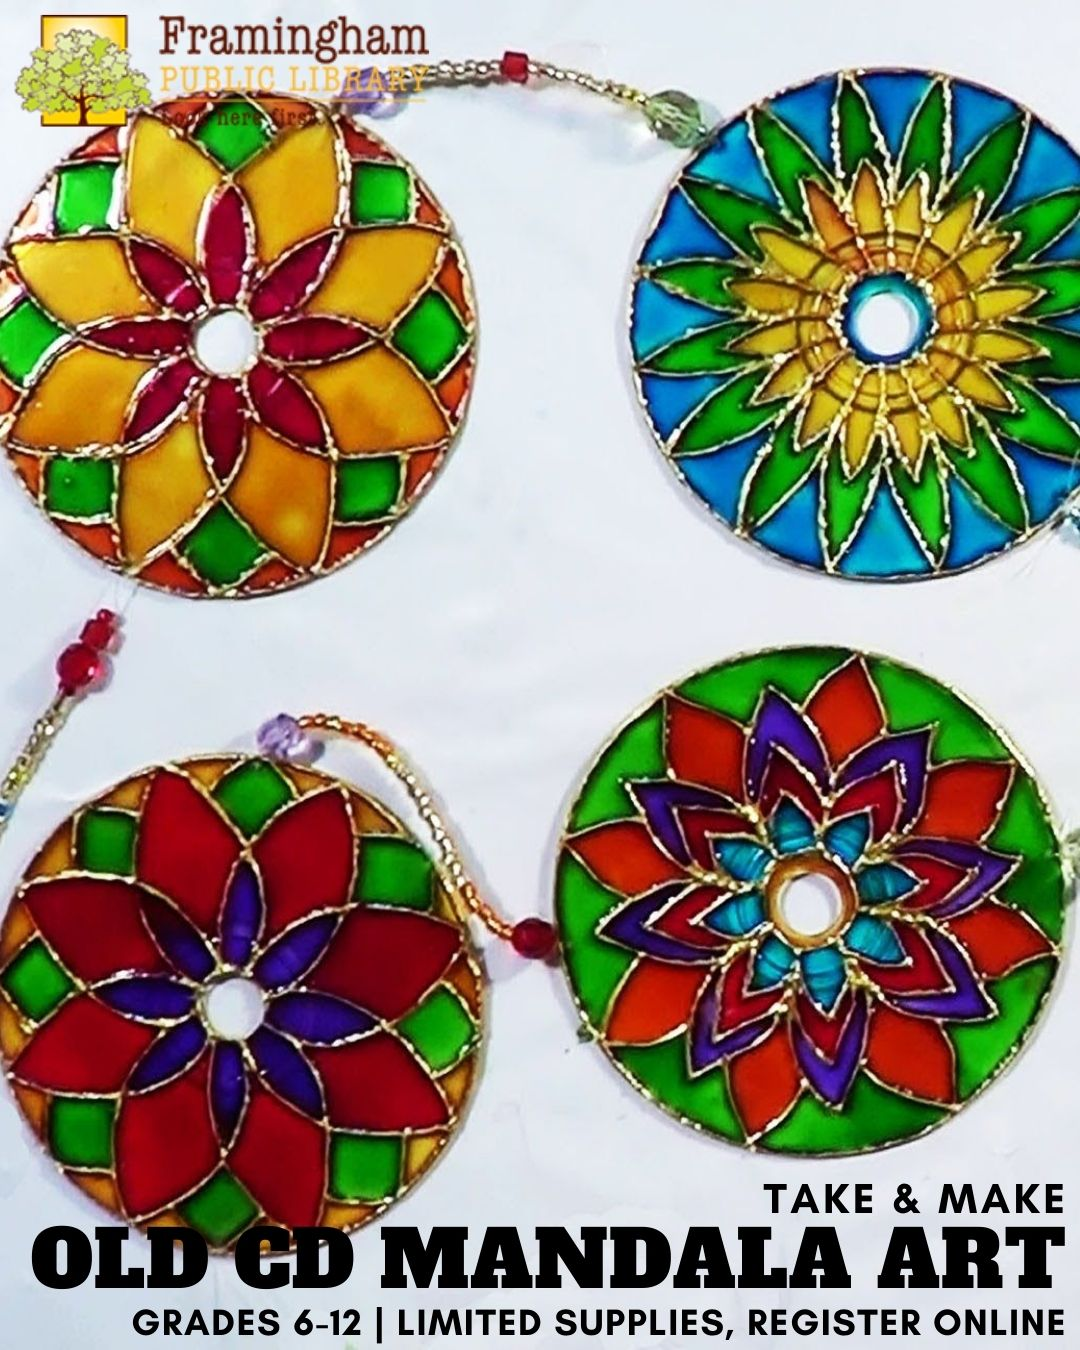 Old CD Mandala Art Take & Make Kit thumbnail Photo